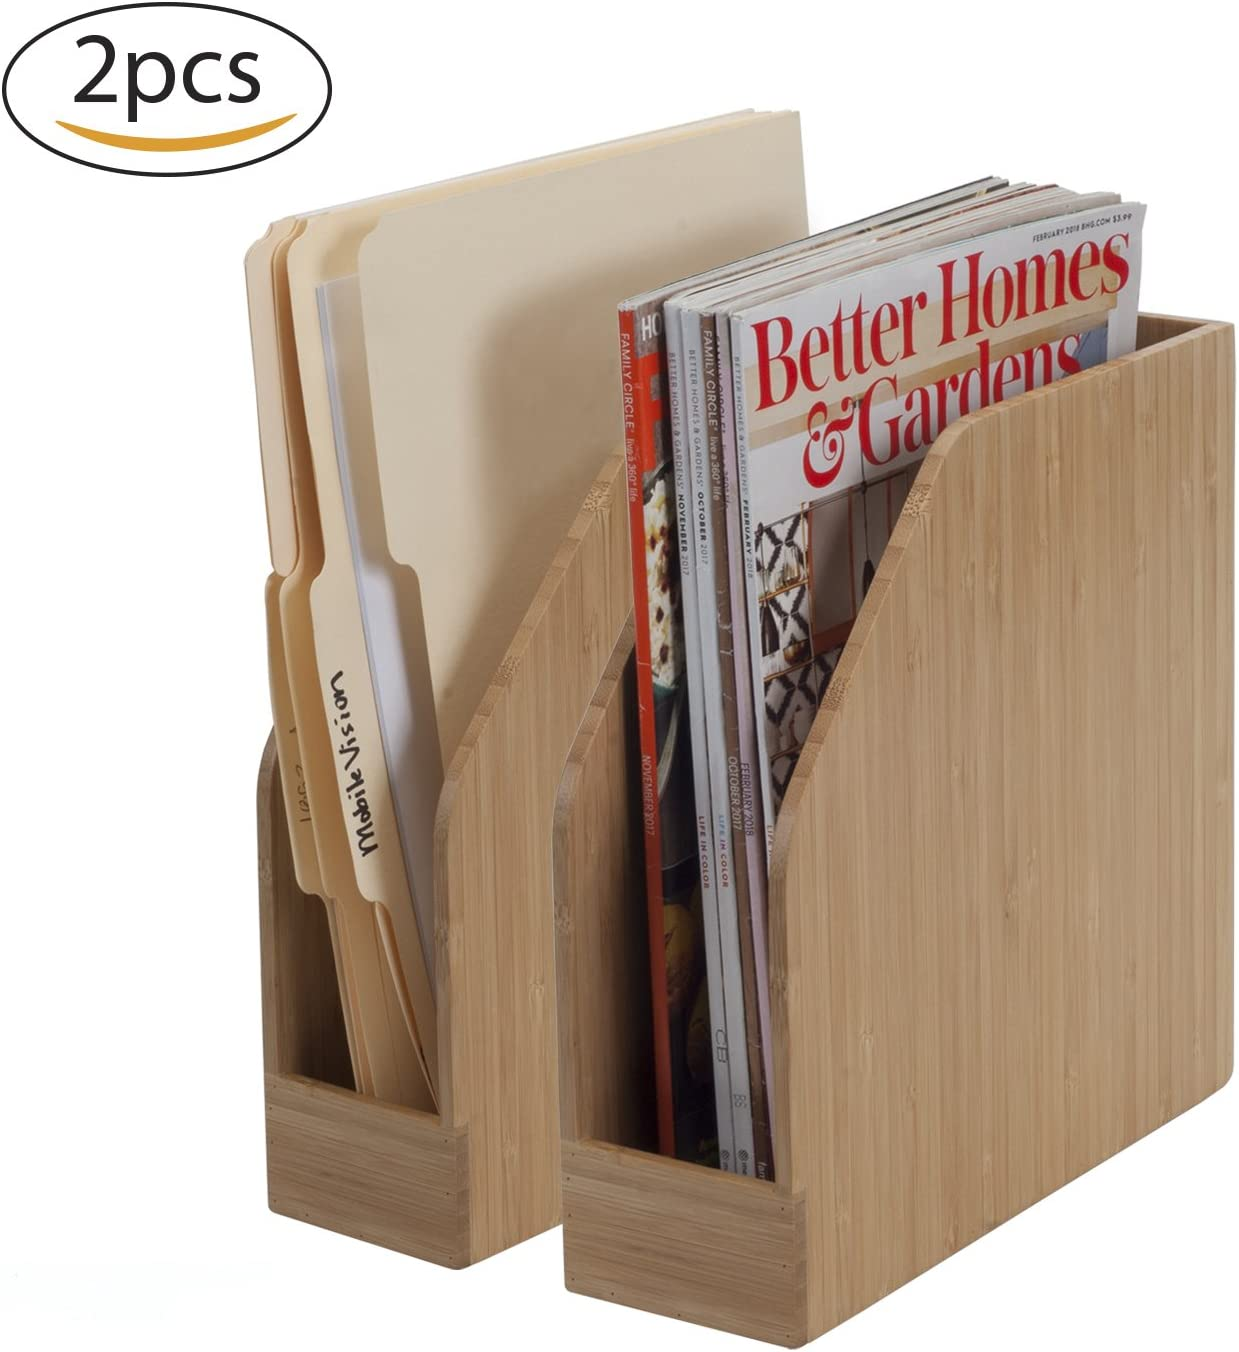 Amazon Com Bamboo Vertical File Folder Holder Office Product Organizer Store Files Magazines Notepads Books And More 2 Pack Combo Set Home Improvement